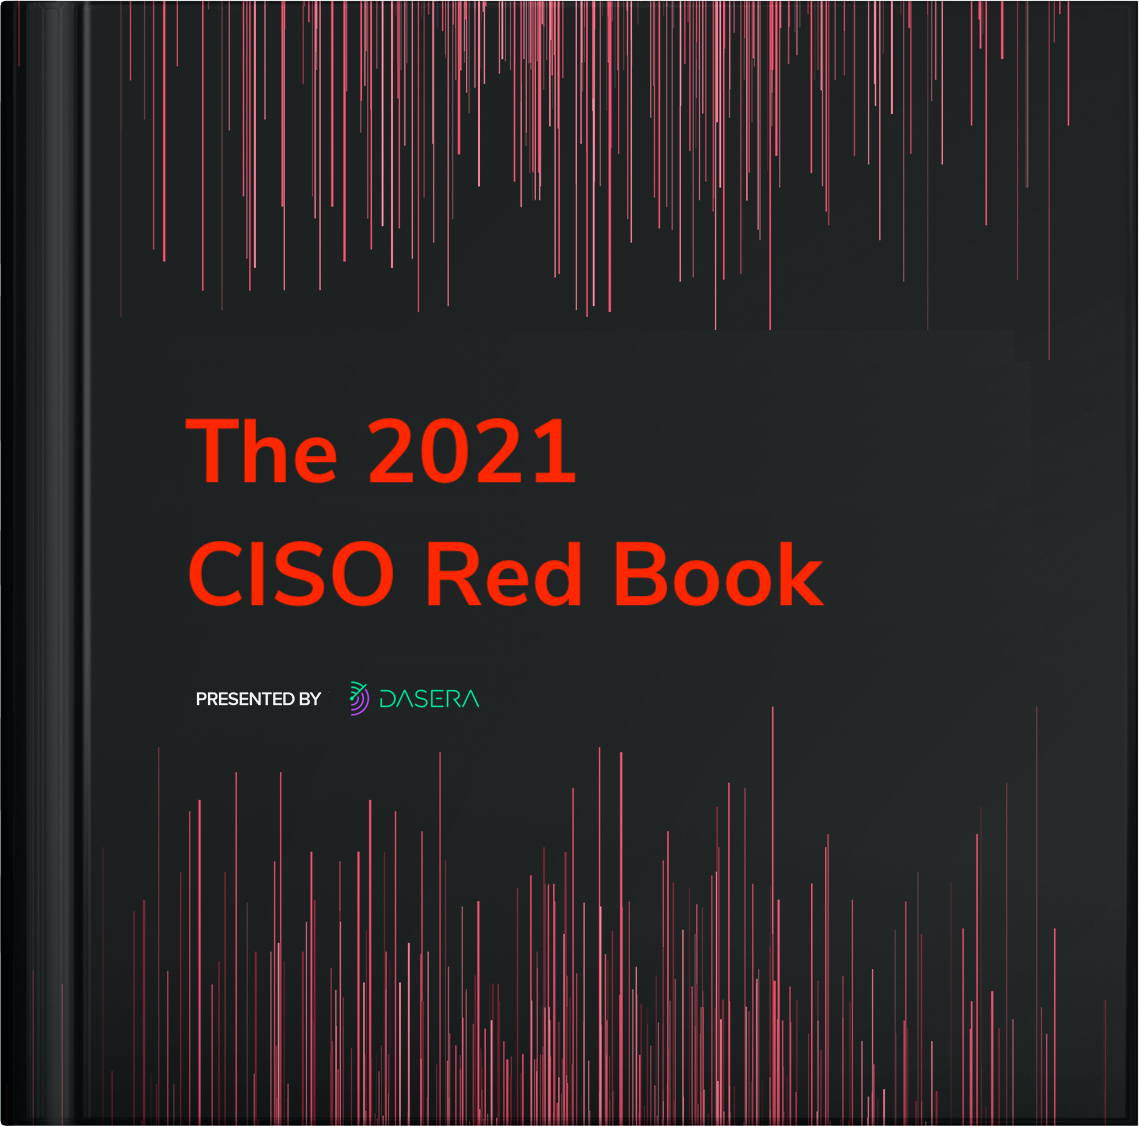 2021 Ciso Red Book by Dasera